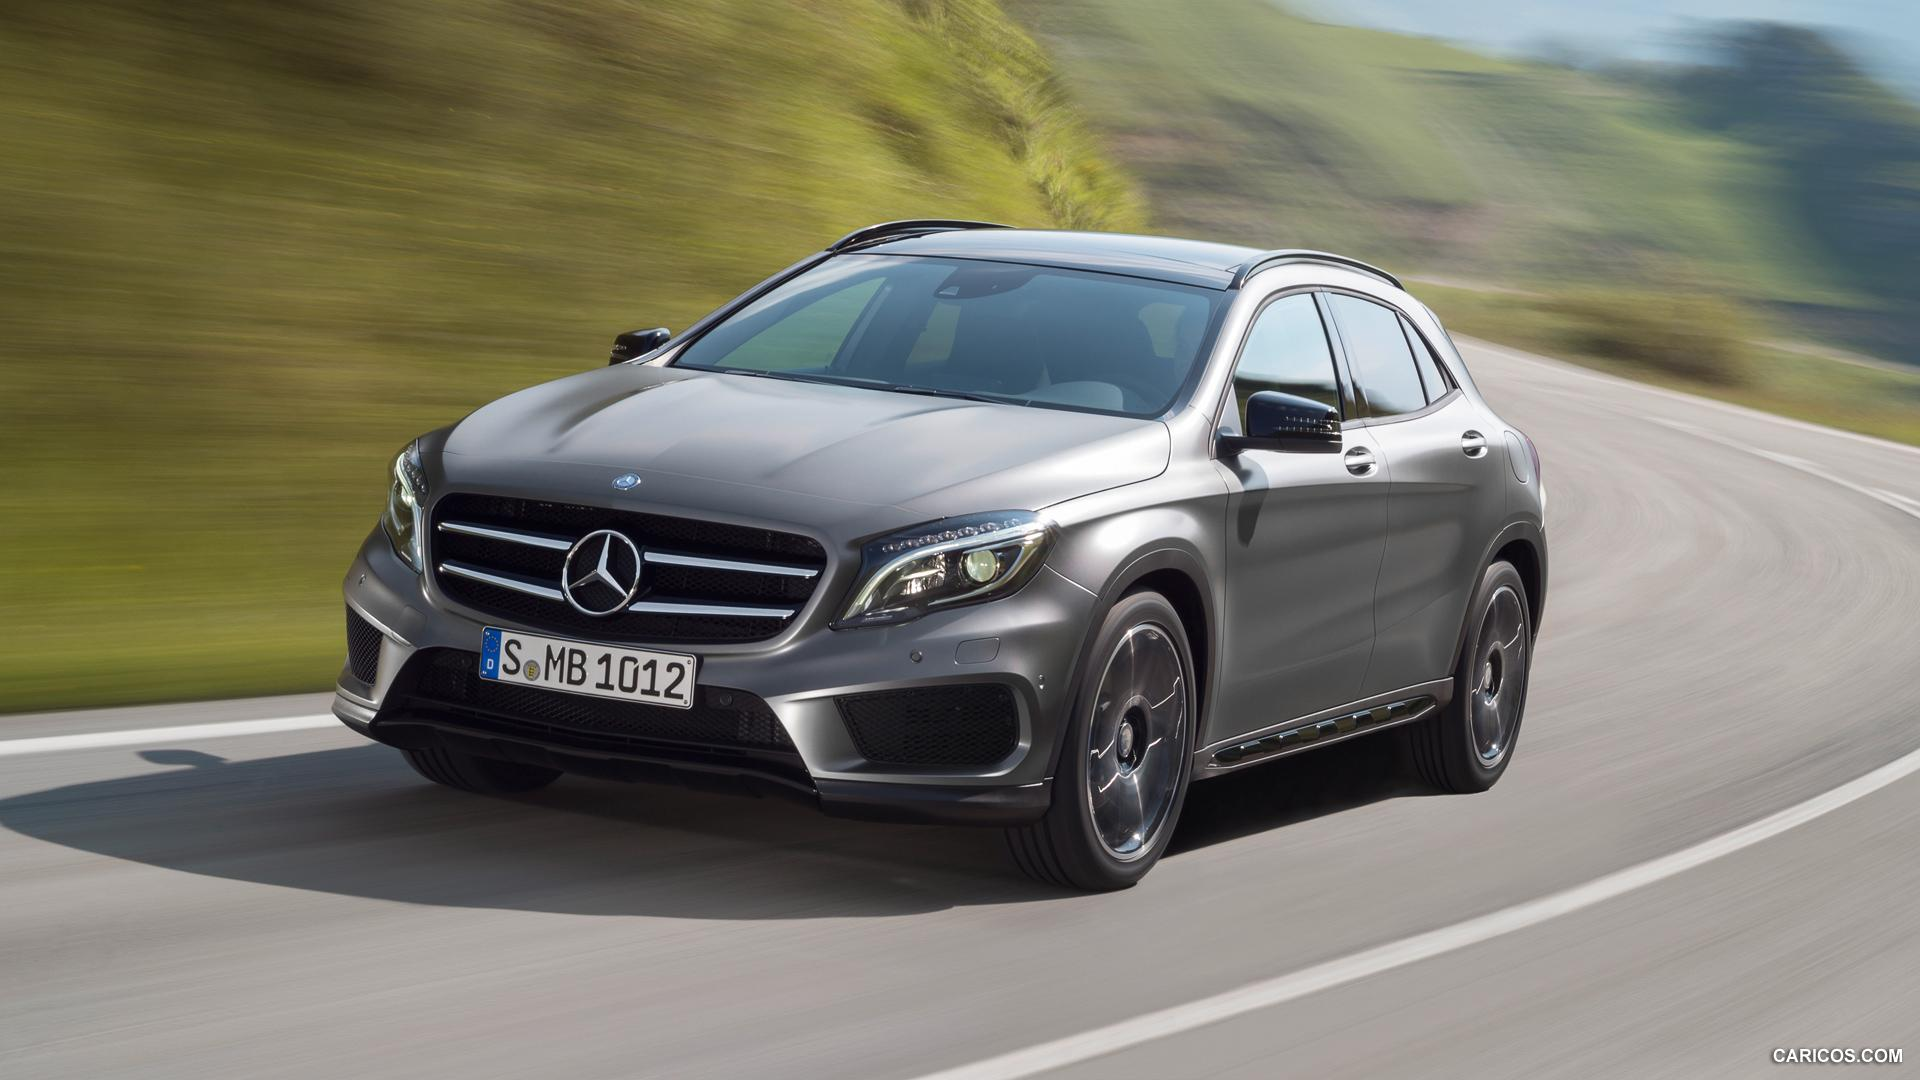 2015 Mercedes-Benz GLA-Class - GLA 250 4MATIC - Front | HD Wallpaper #2